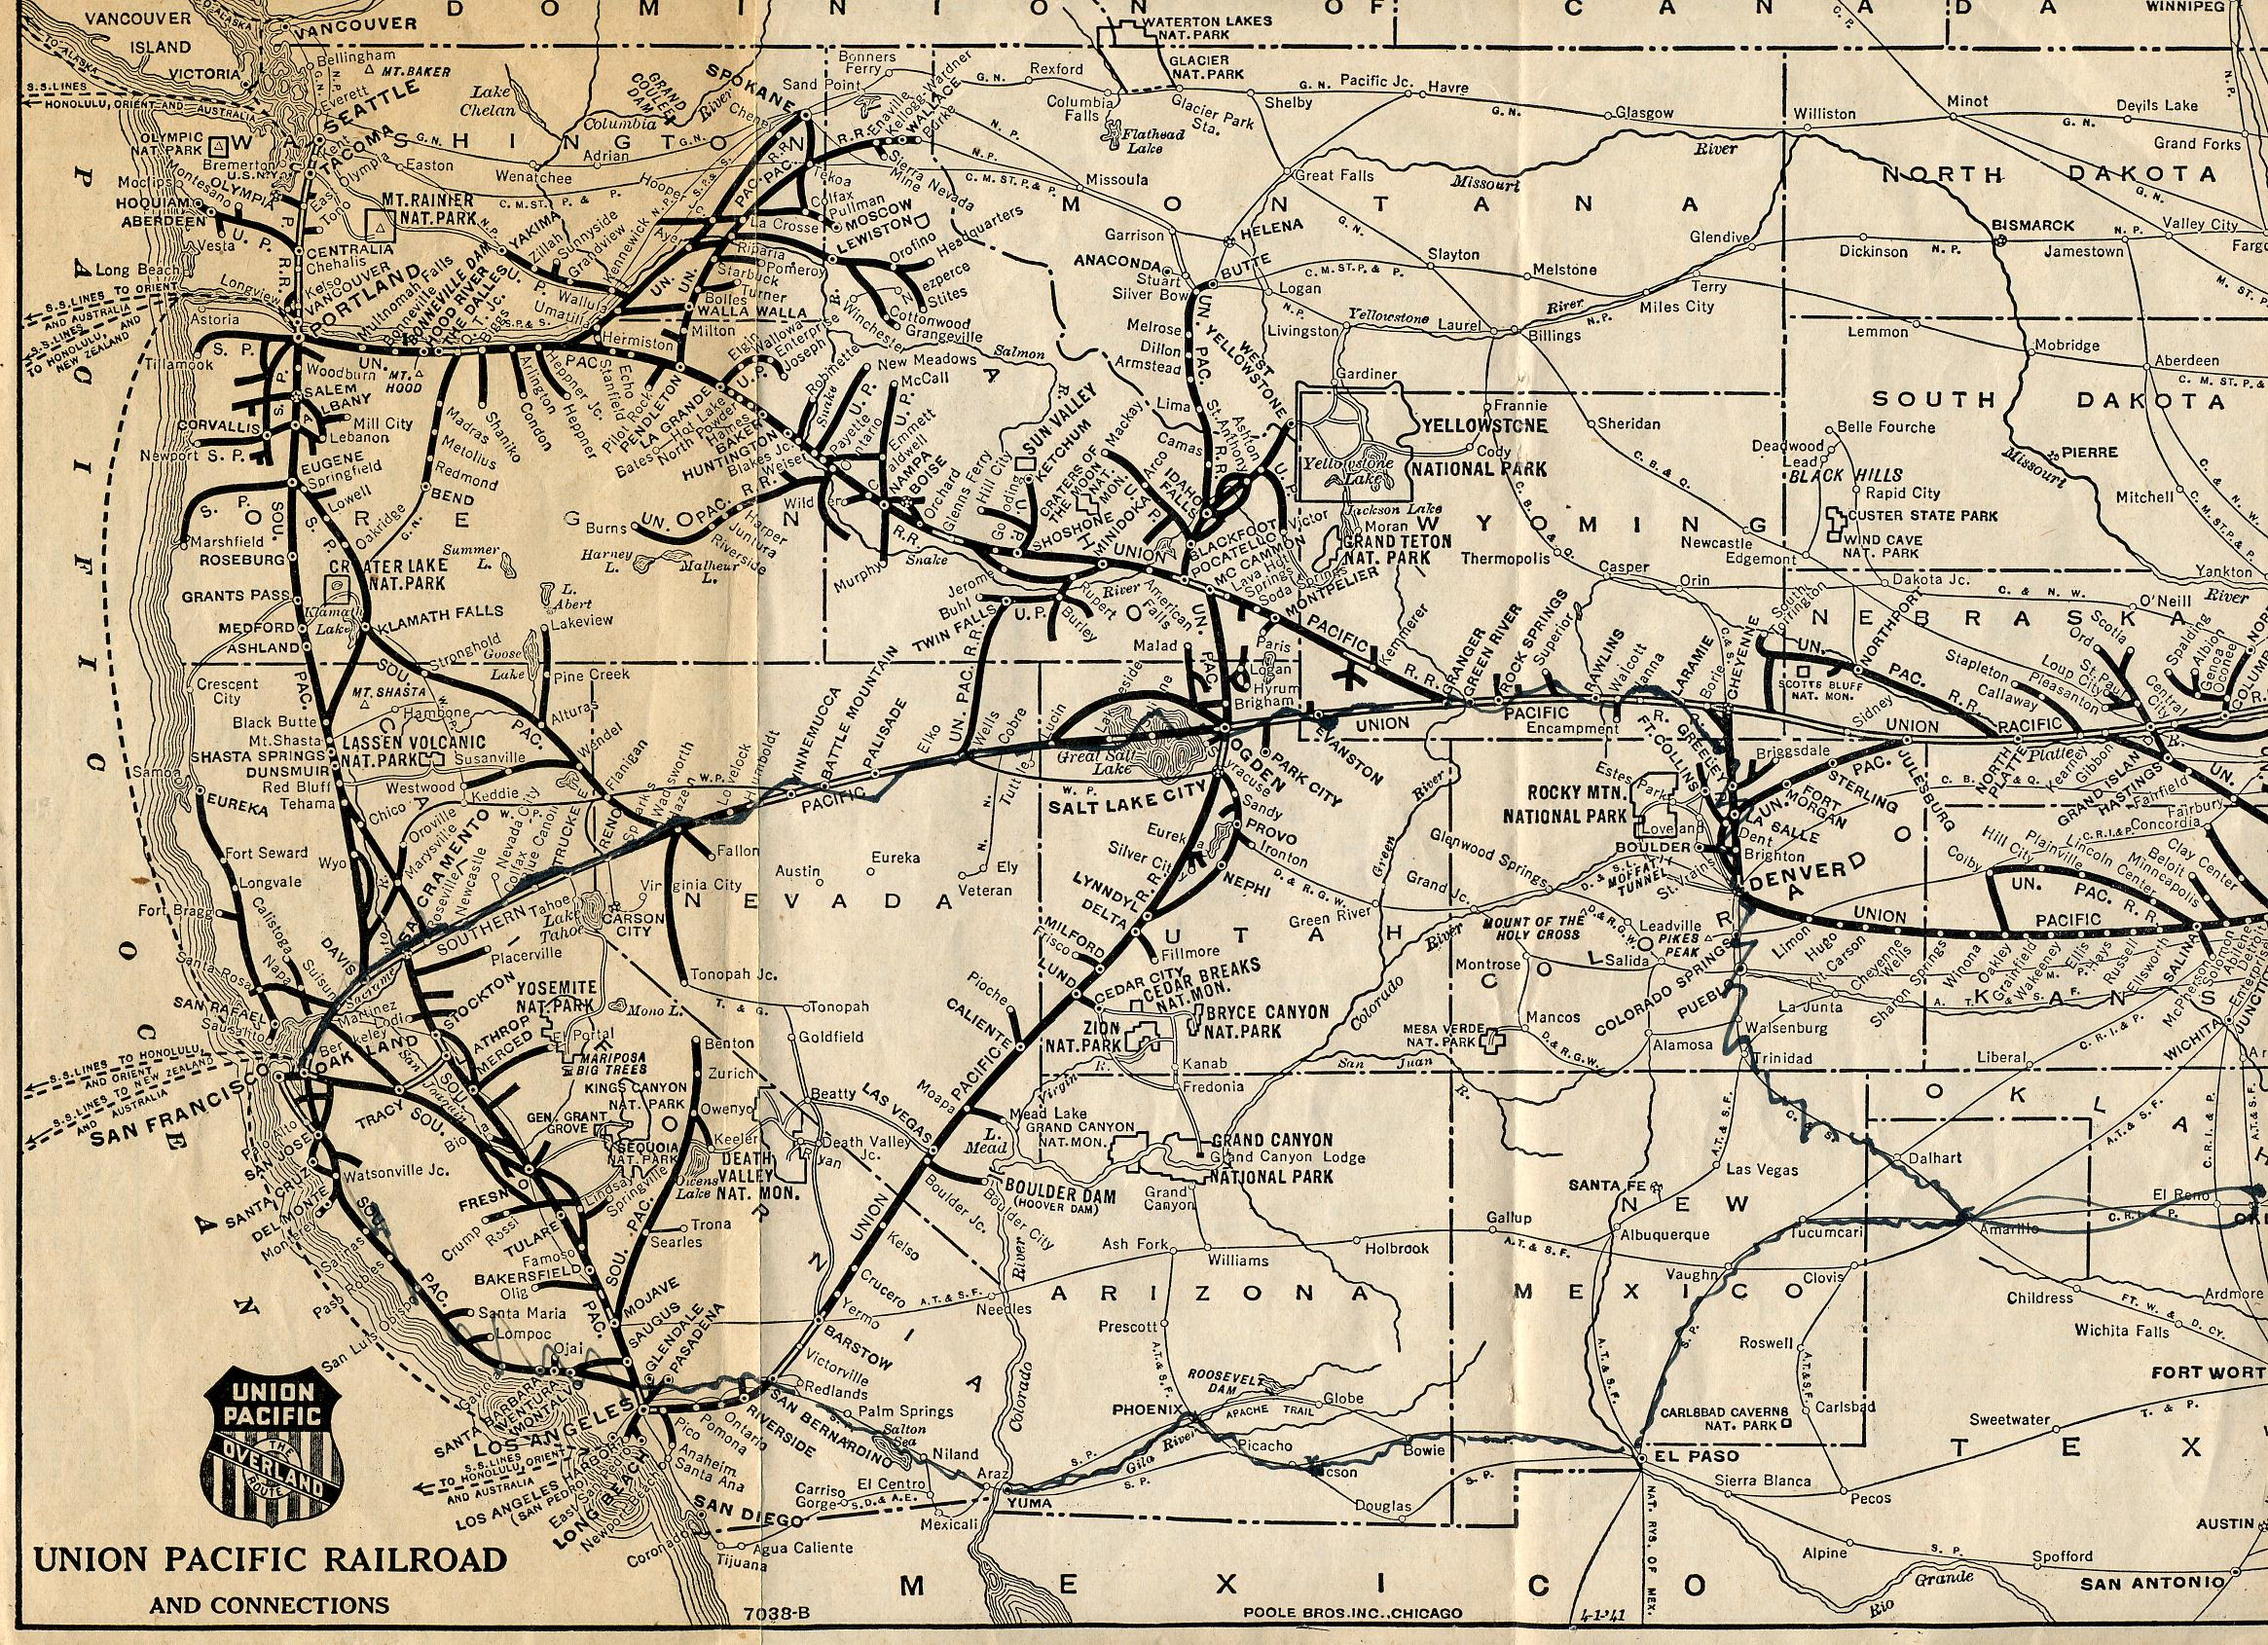 Union Pacific Railroad Map Part US Mappery - Map of us railways